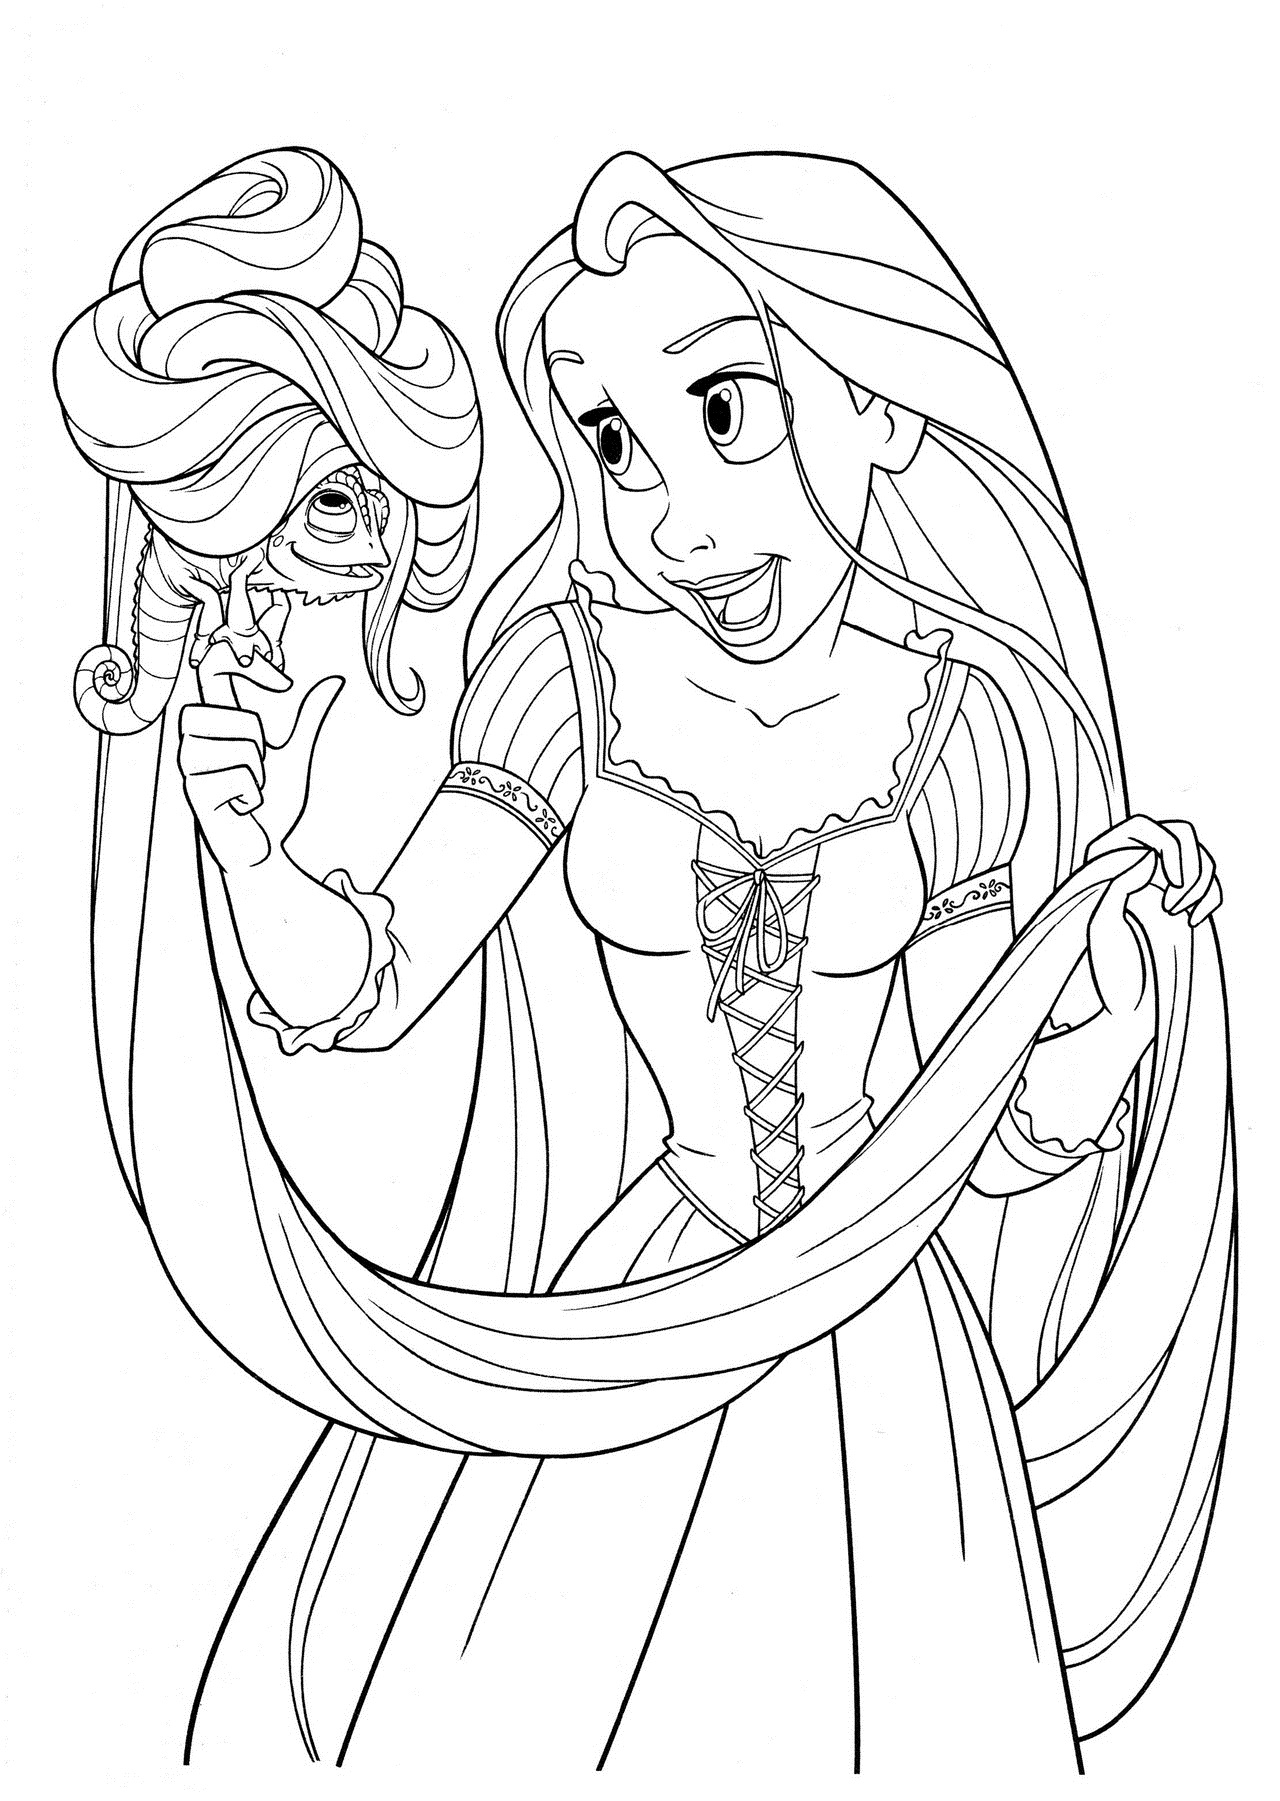 coloring pages of boooks - photo#45